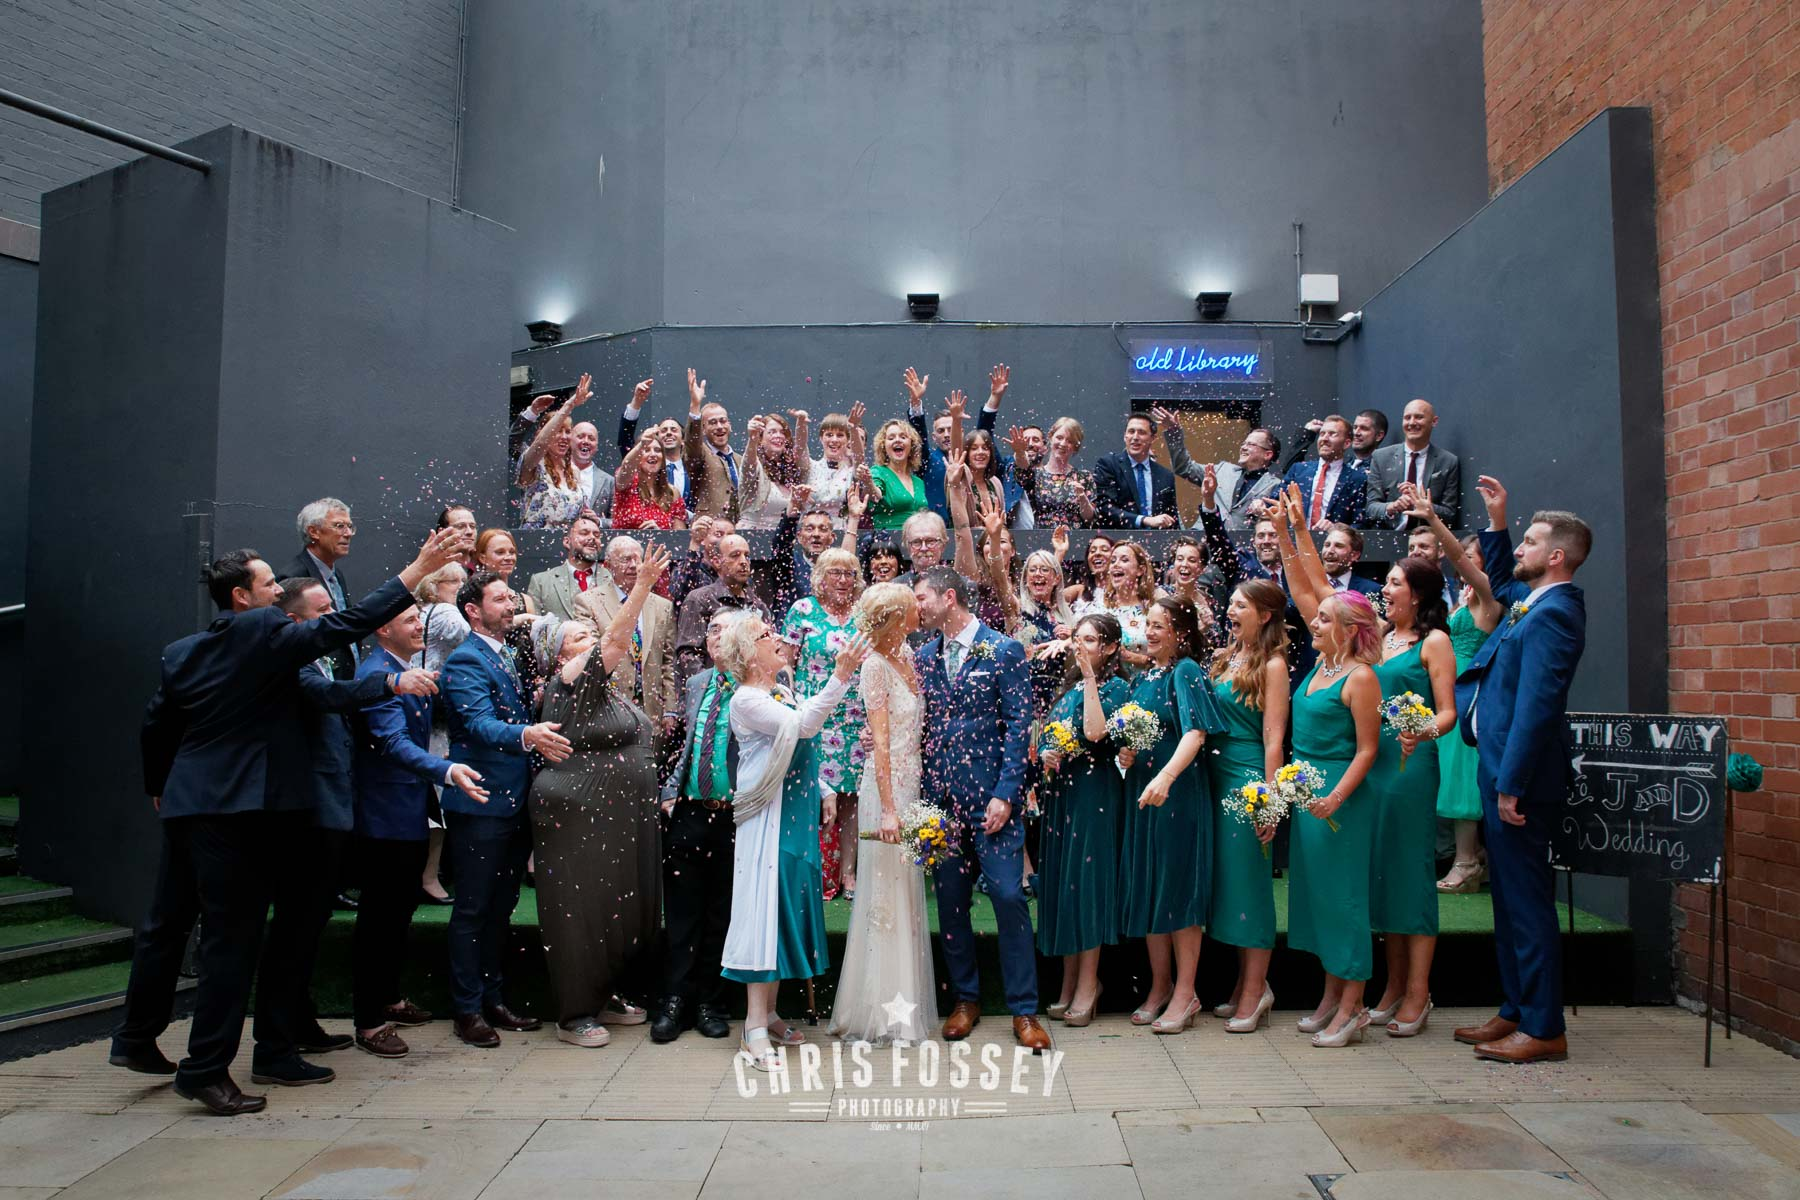 Wedding Photography The Old Library Digbeth Birmignham B9 4AT